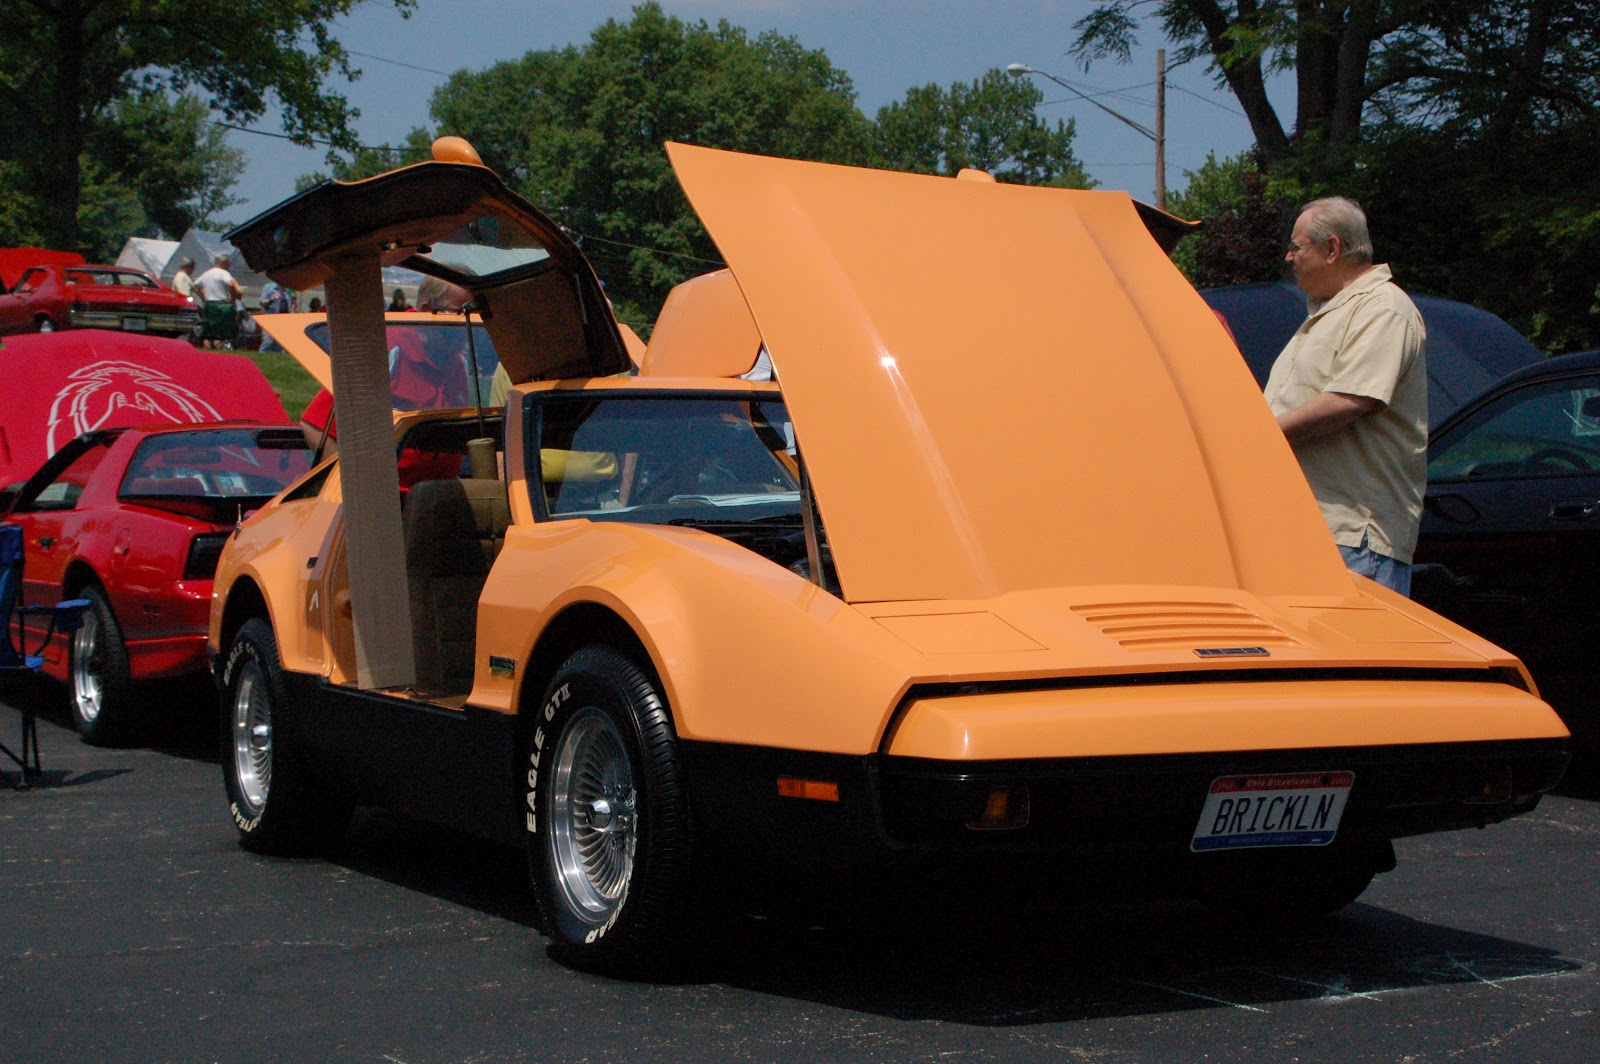 Bricklin